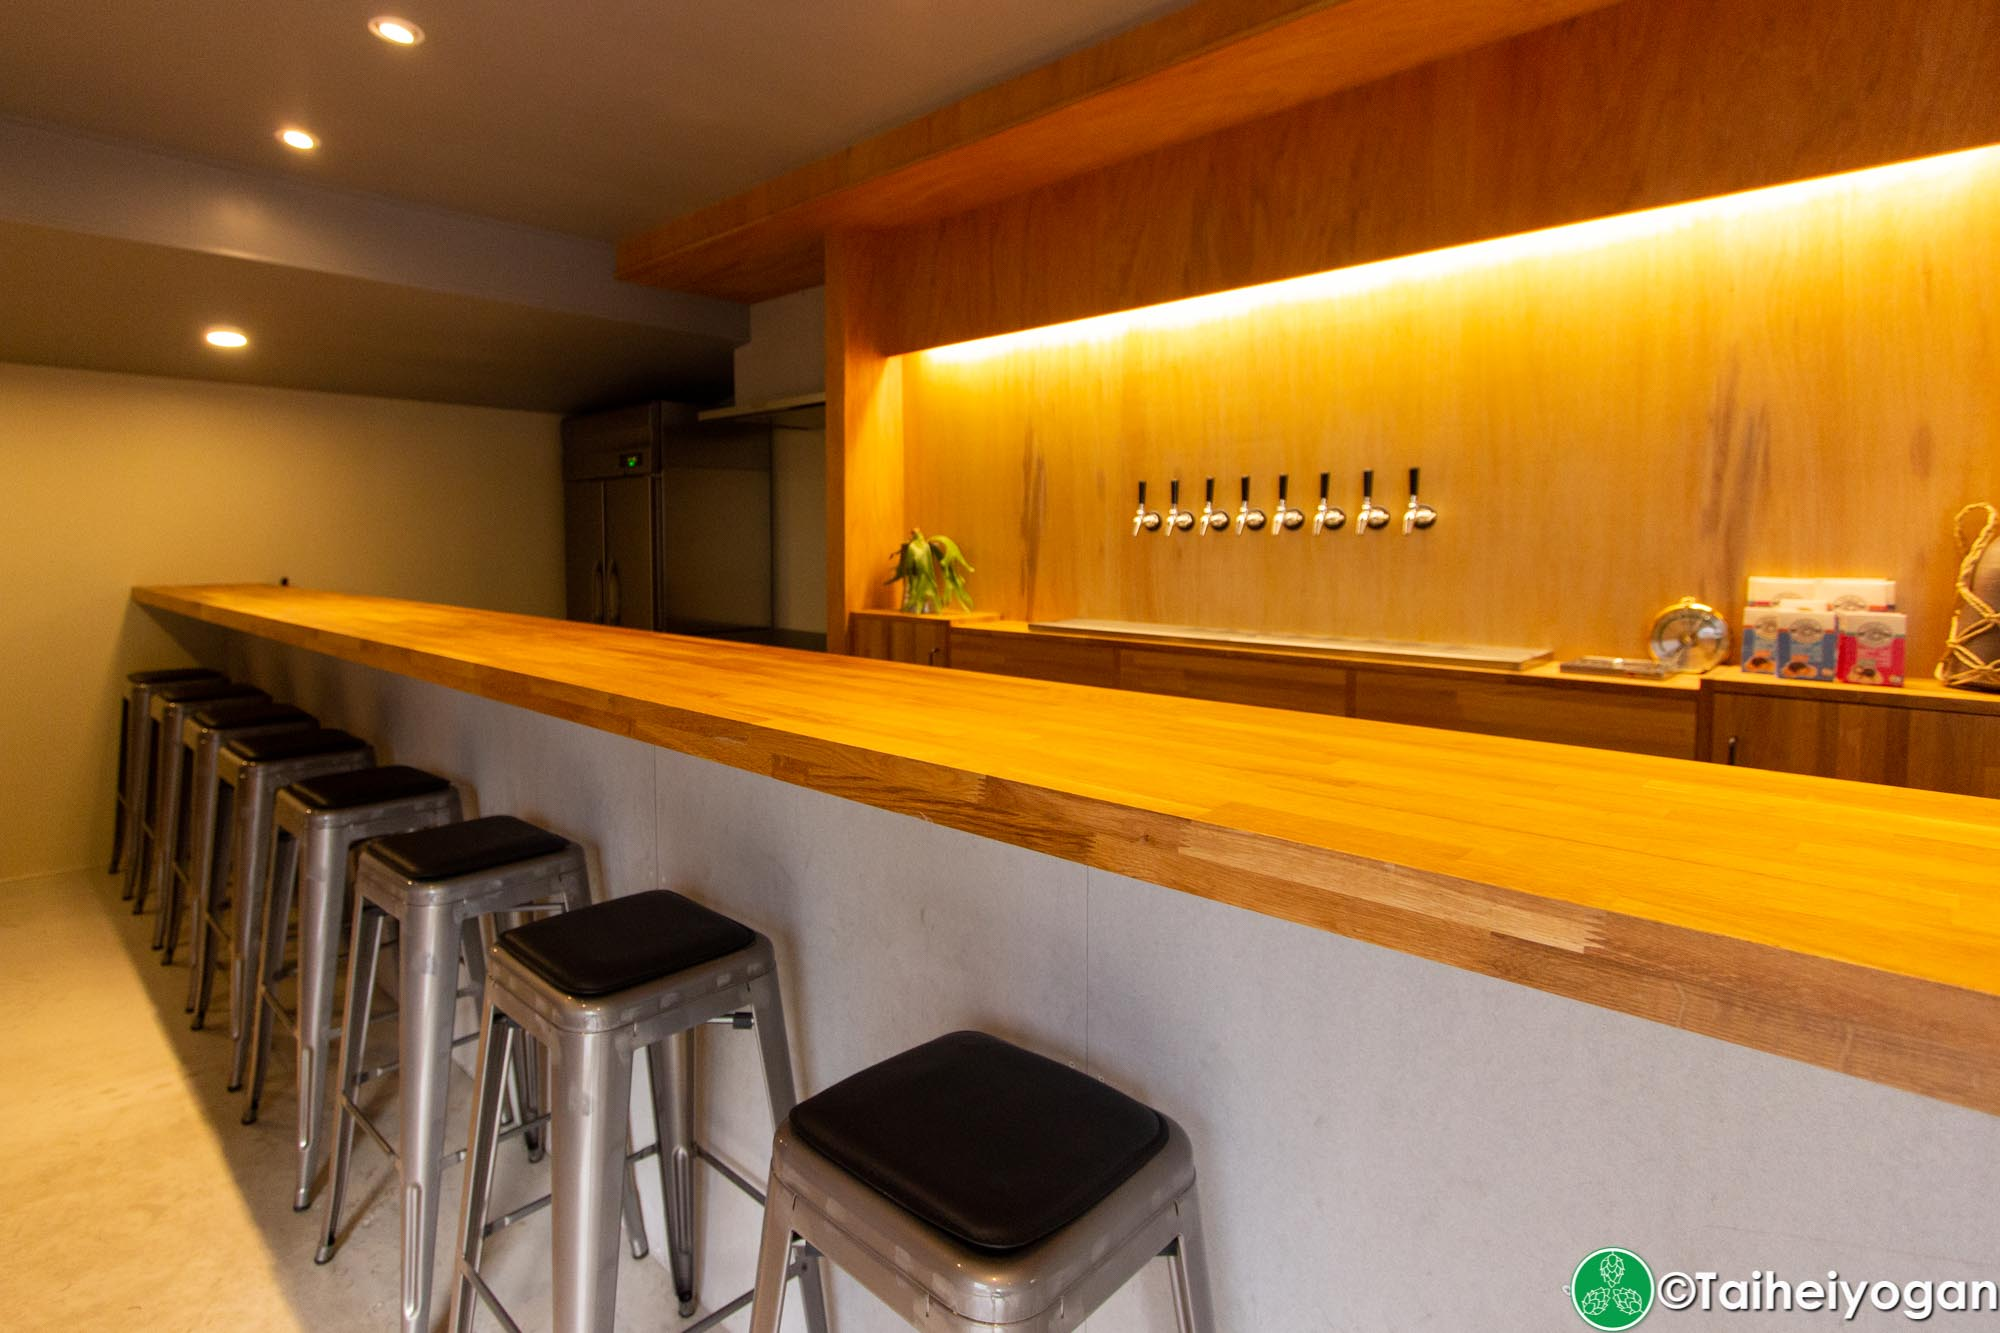 Folkways Brewing - Interior - Bar Counter